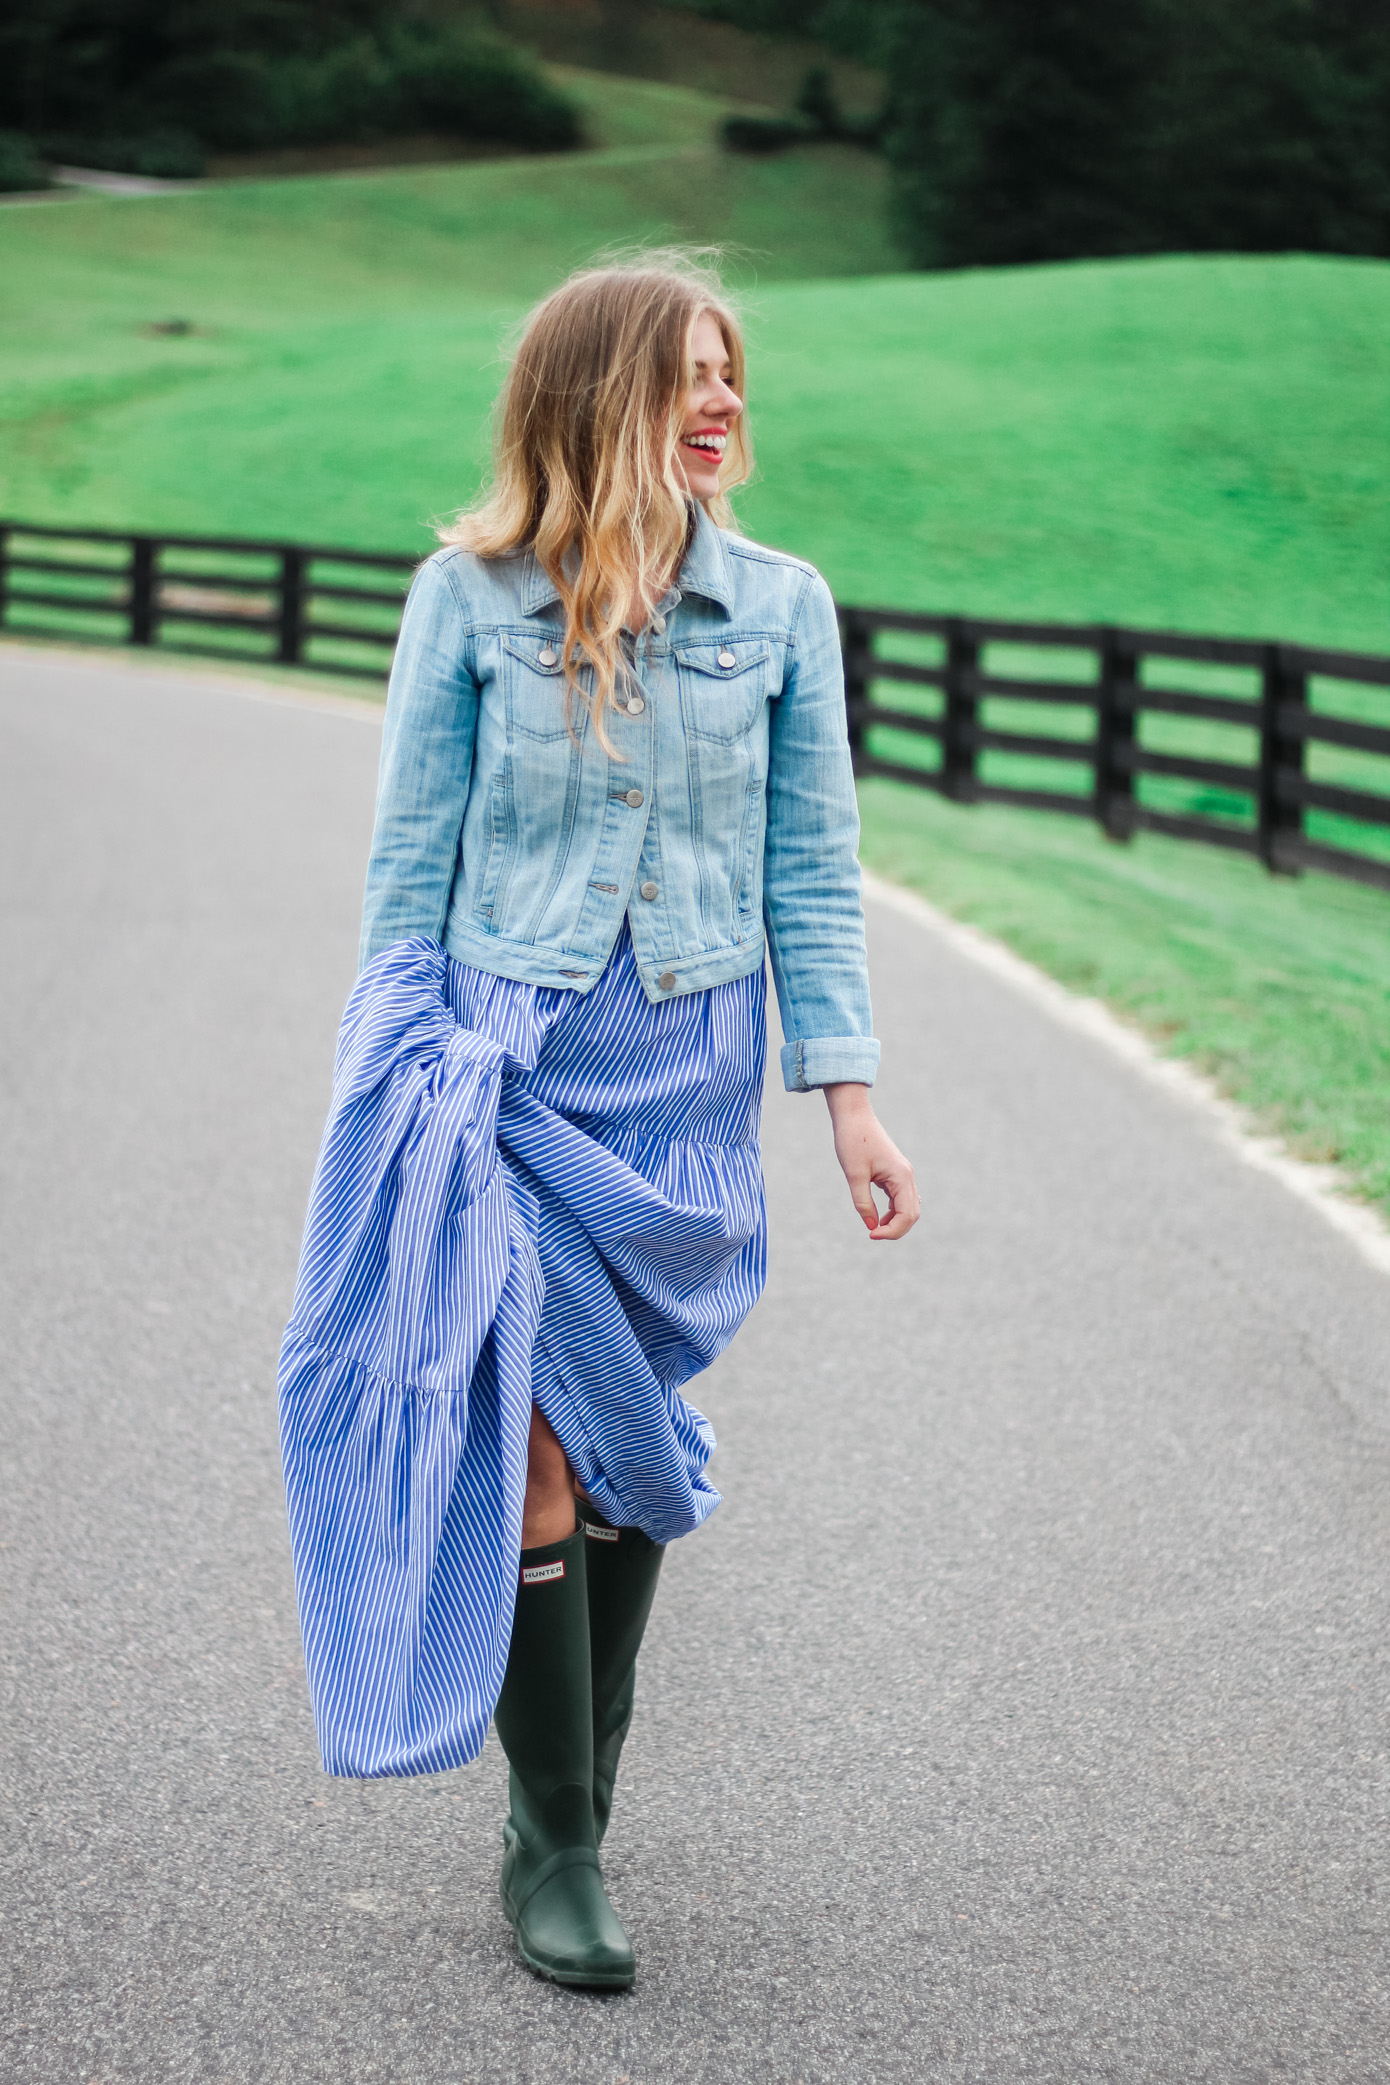 Fall Maxi Dress | How to Style a Maxi Dress with Rain Boots | Louella Reese Life & Style Blog